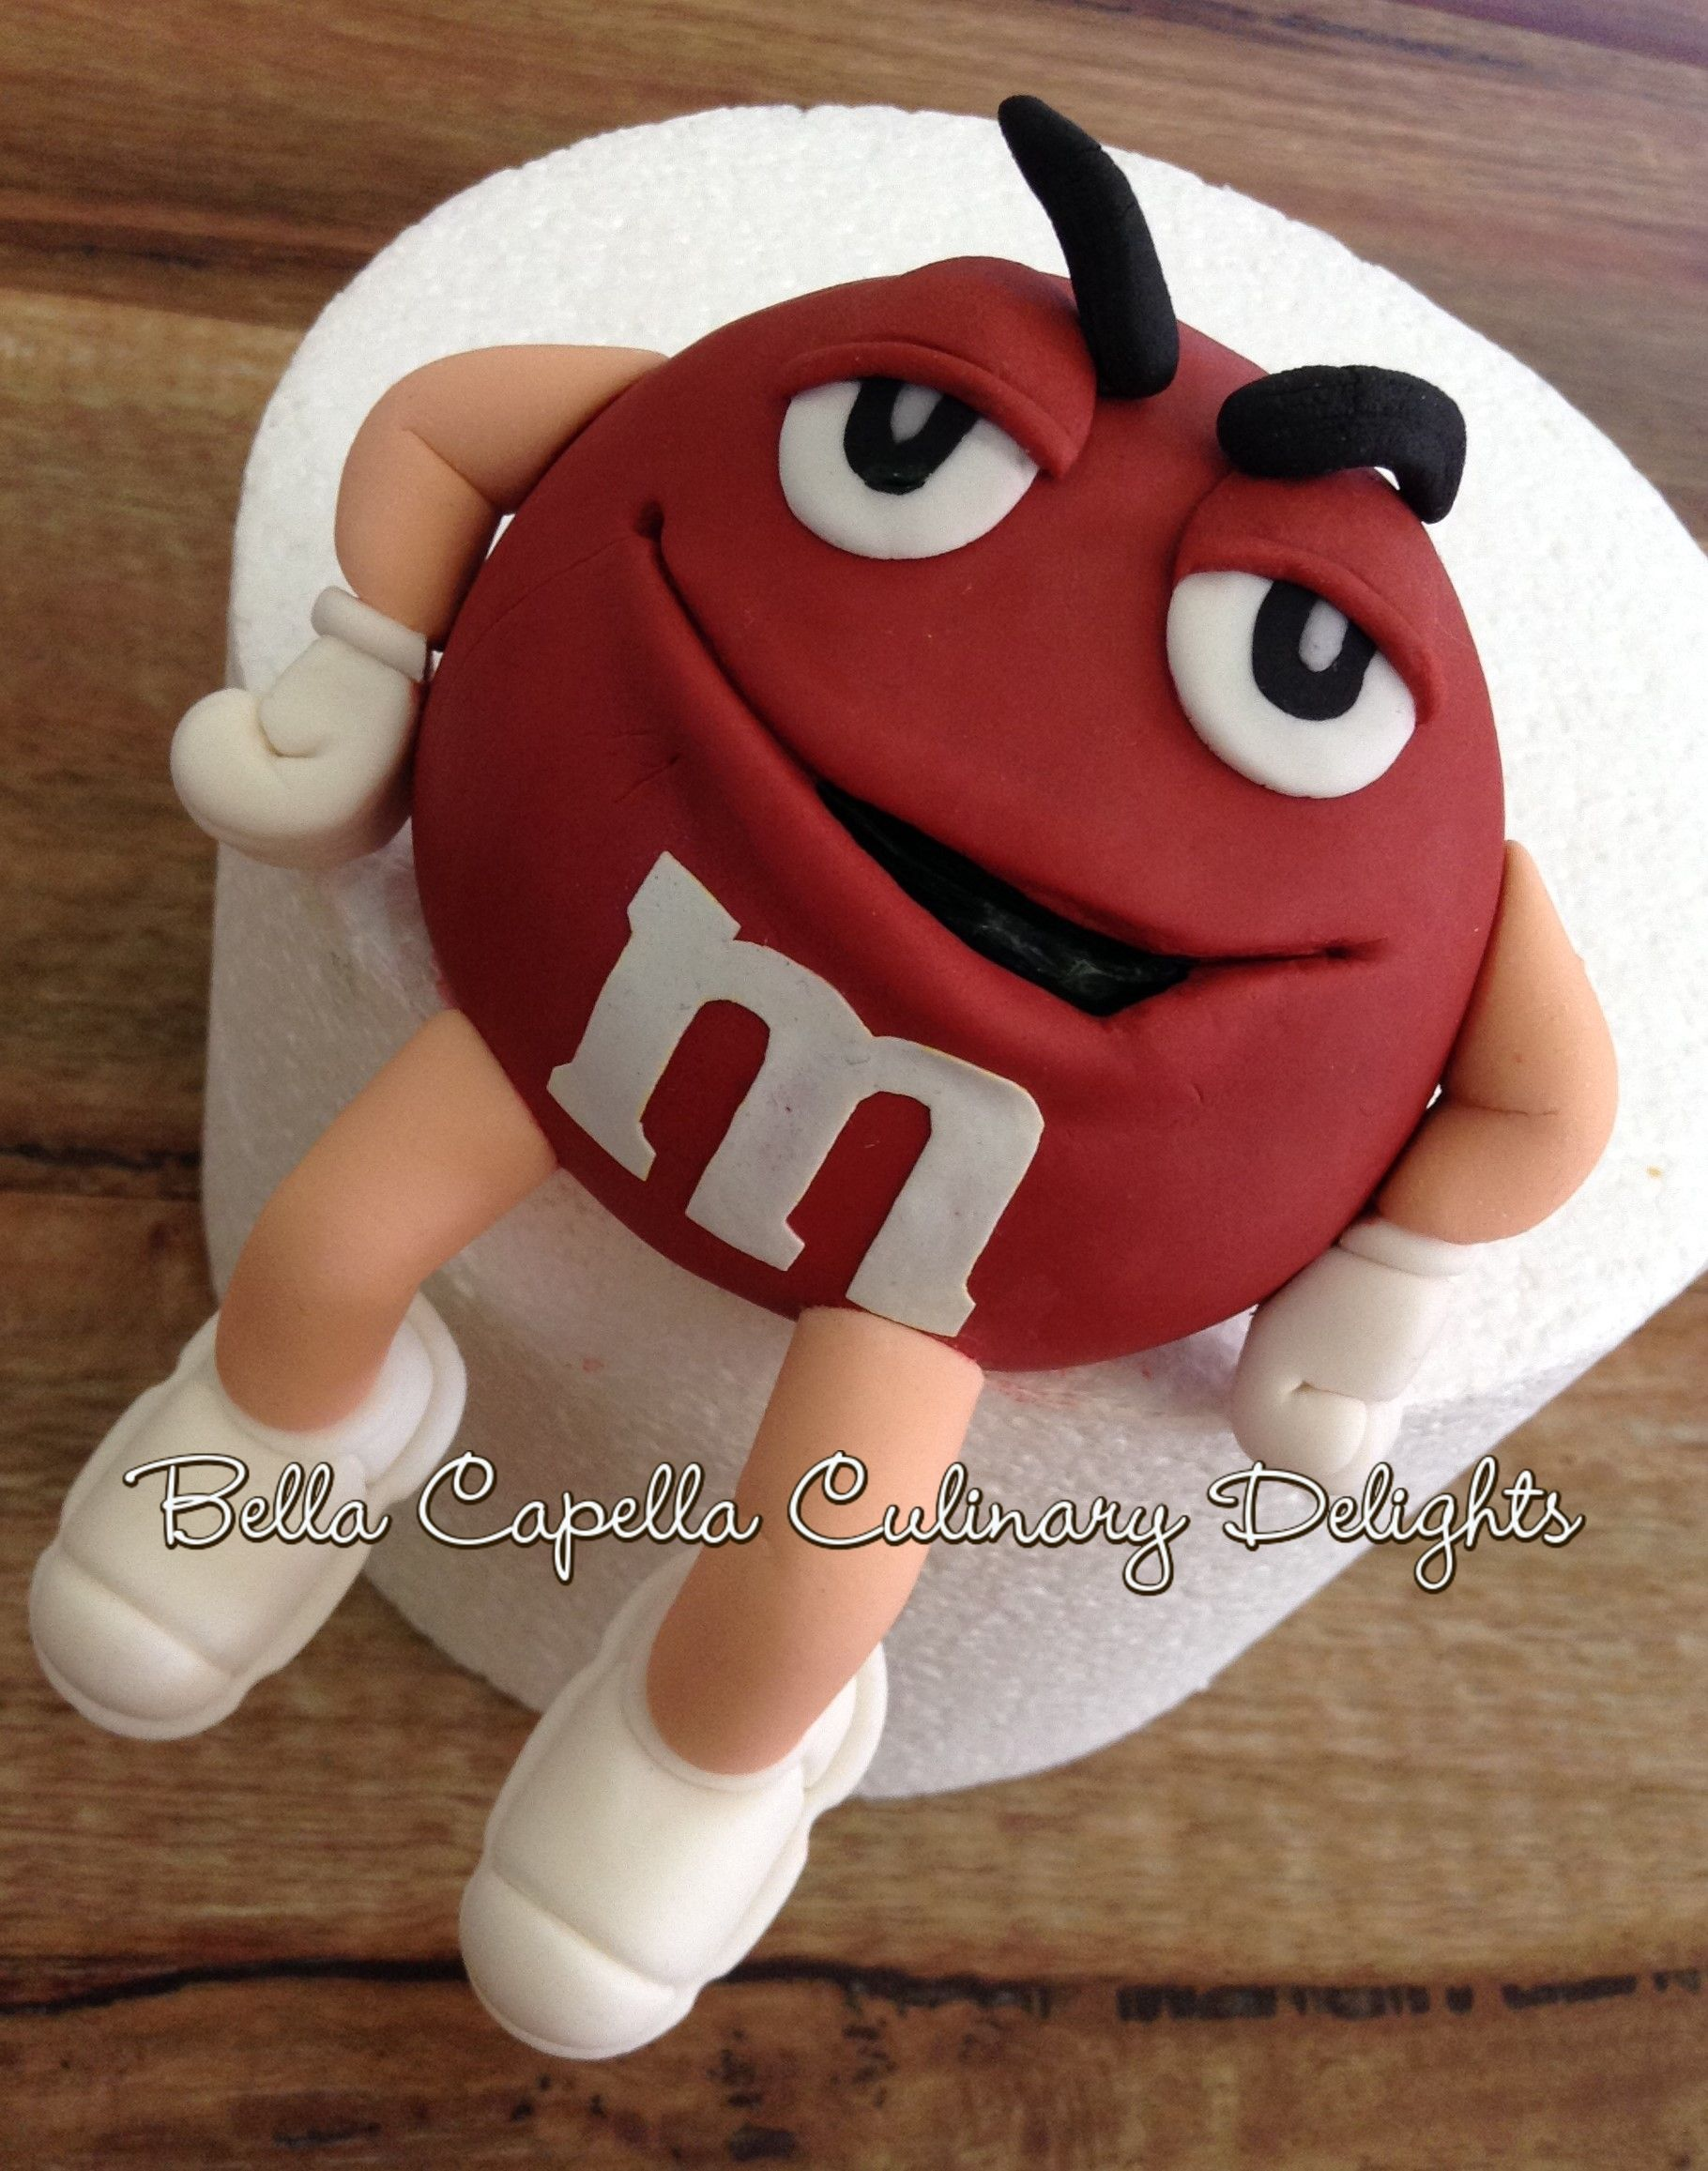 Red M&M - Gumpaste figurine for the customer to place on their own cake.